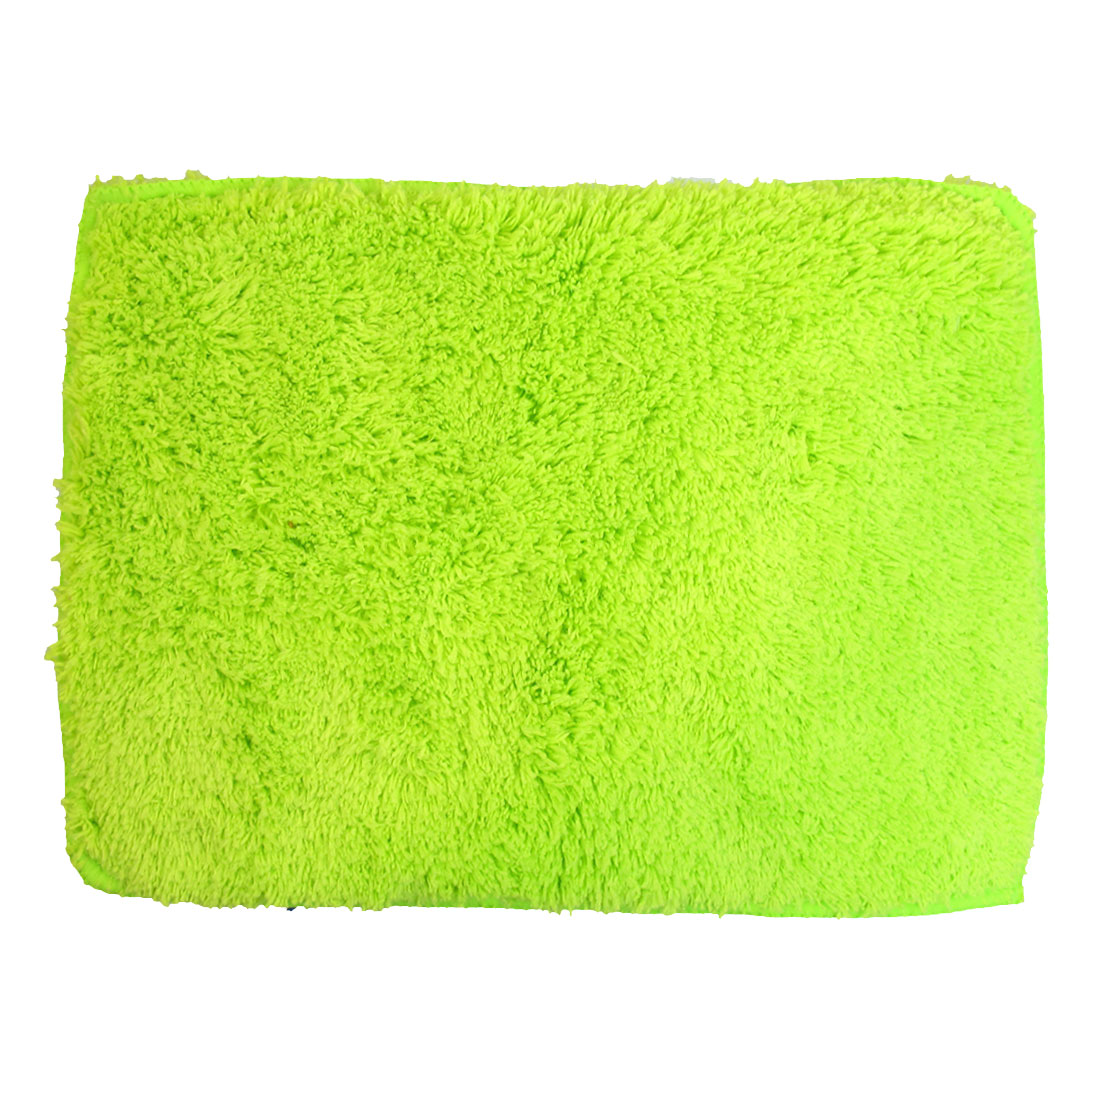 UXCELL Vehicle Car Door Glass Rectangle Shape Wash Towel Cloth Cleaning Tool Green